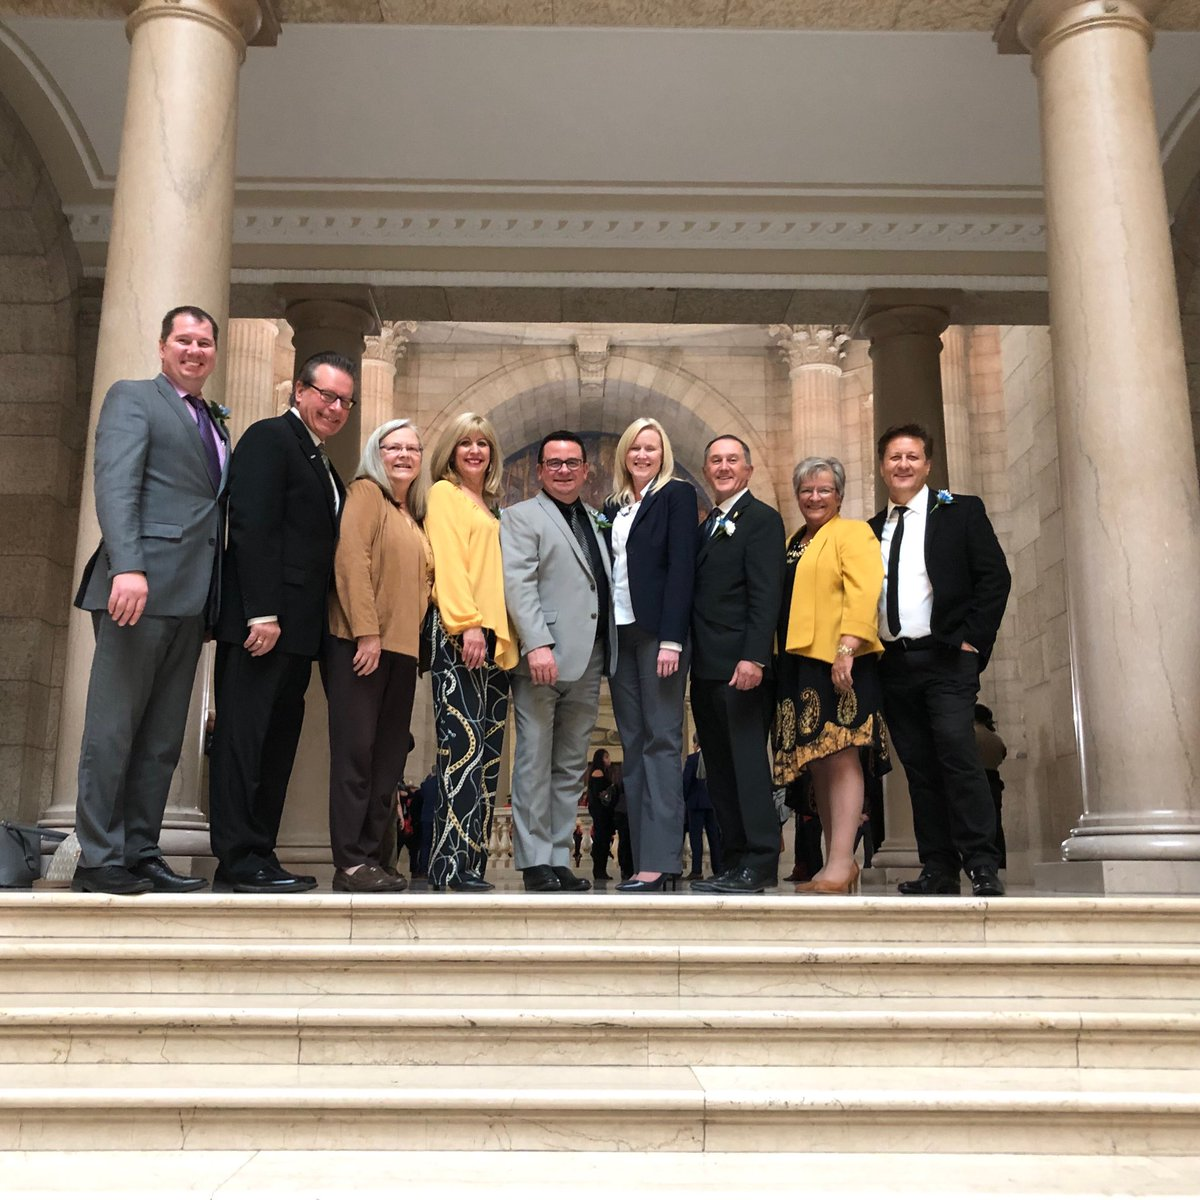 test Twitter Media - Celebrating the the opening of the 2nd session of the 42nd legislature with regional mayors and colleagues! #MBspeechfromthethrone2019@JeffWharton4MLA @cathycox @cityofselkirk @RMofstandrews @MartinforMLA @Min_Schuler https://t.co/KVcTUNaj6n